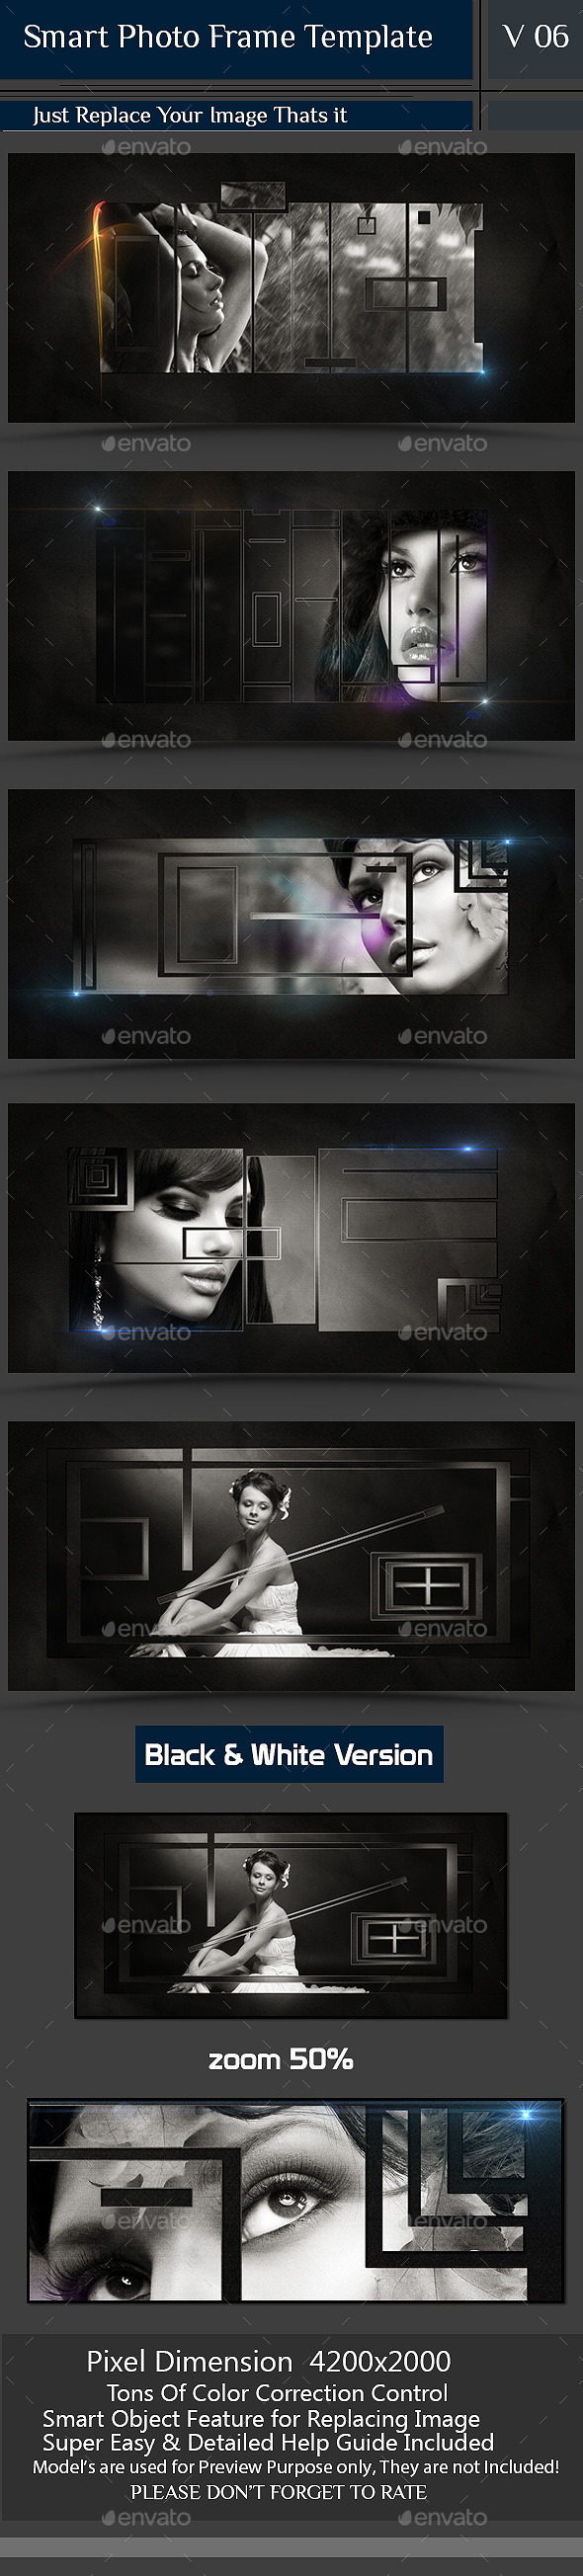 Smart Photo Frame Template V06  - Photo Templates Graphics